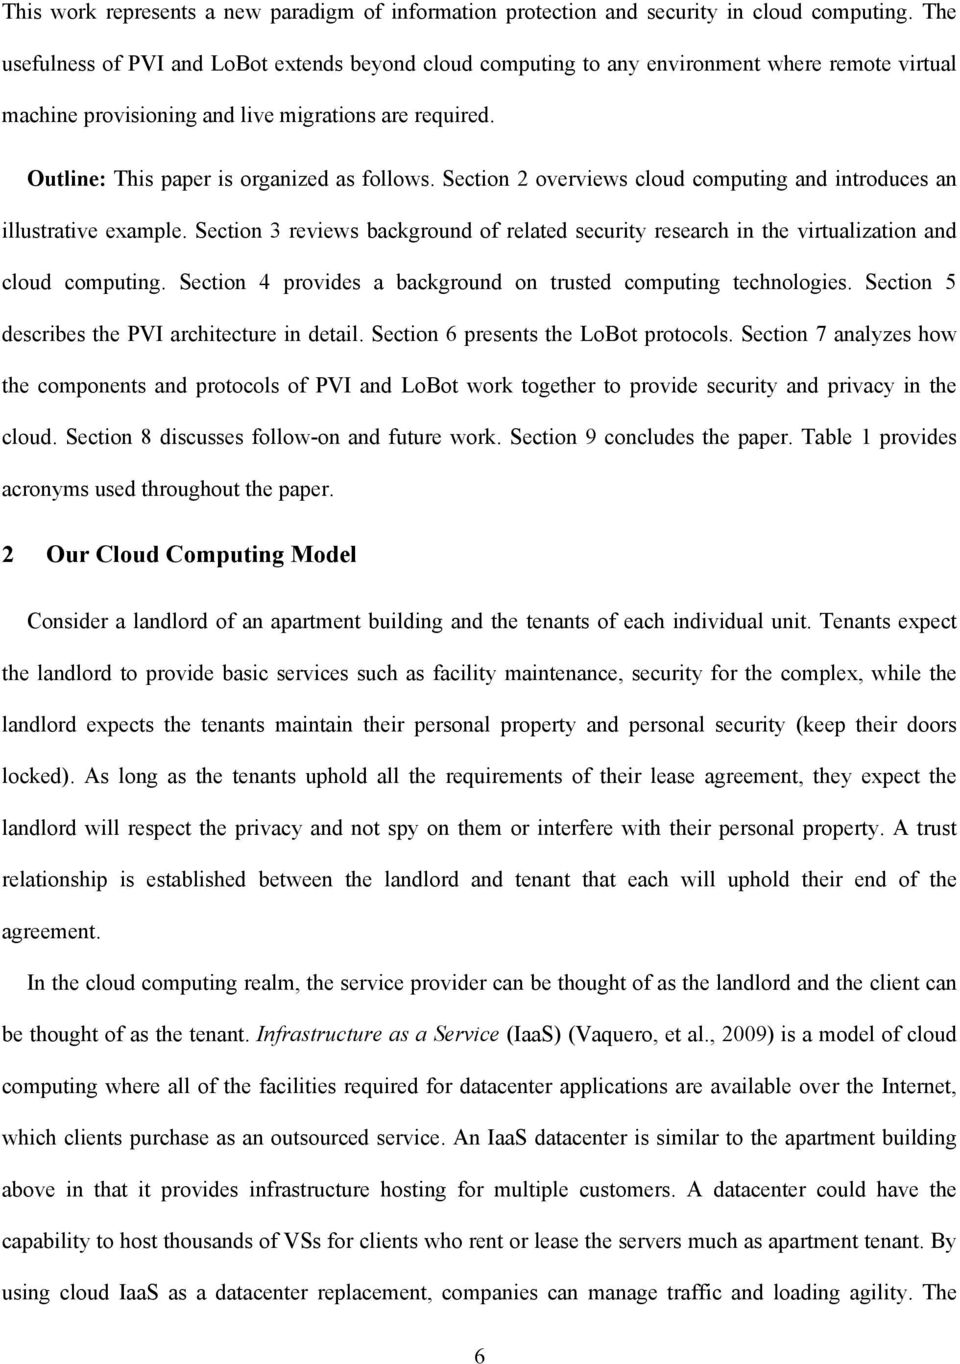 Outline: This paper is organized as follows. Section 2 overviews cloud computing and introduces an illustrative example.